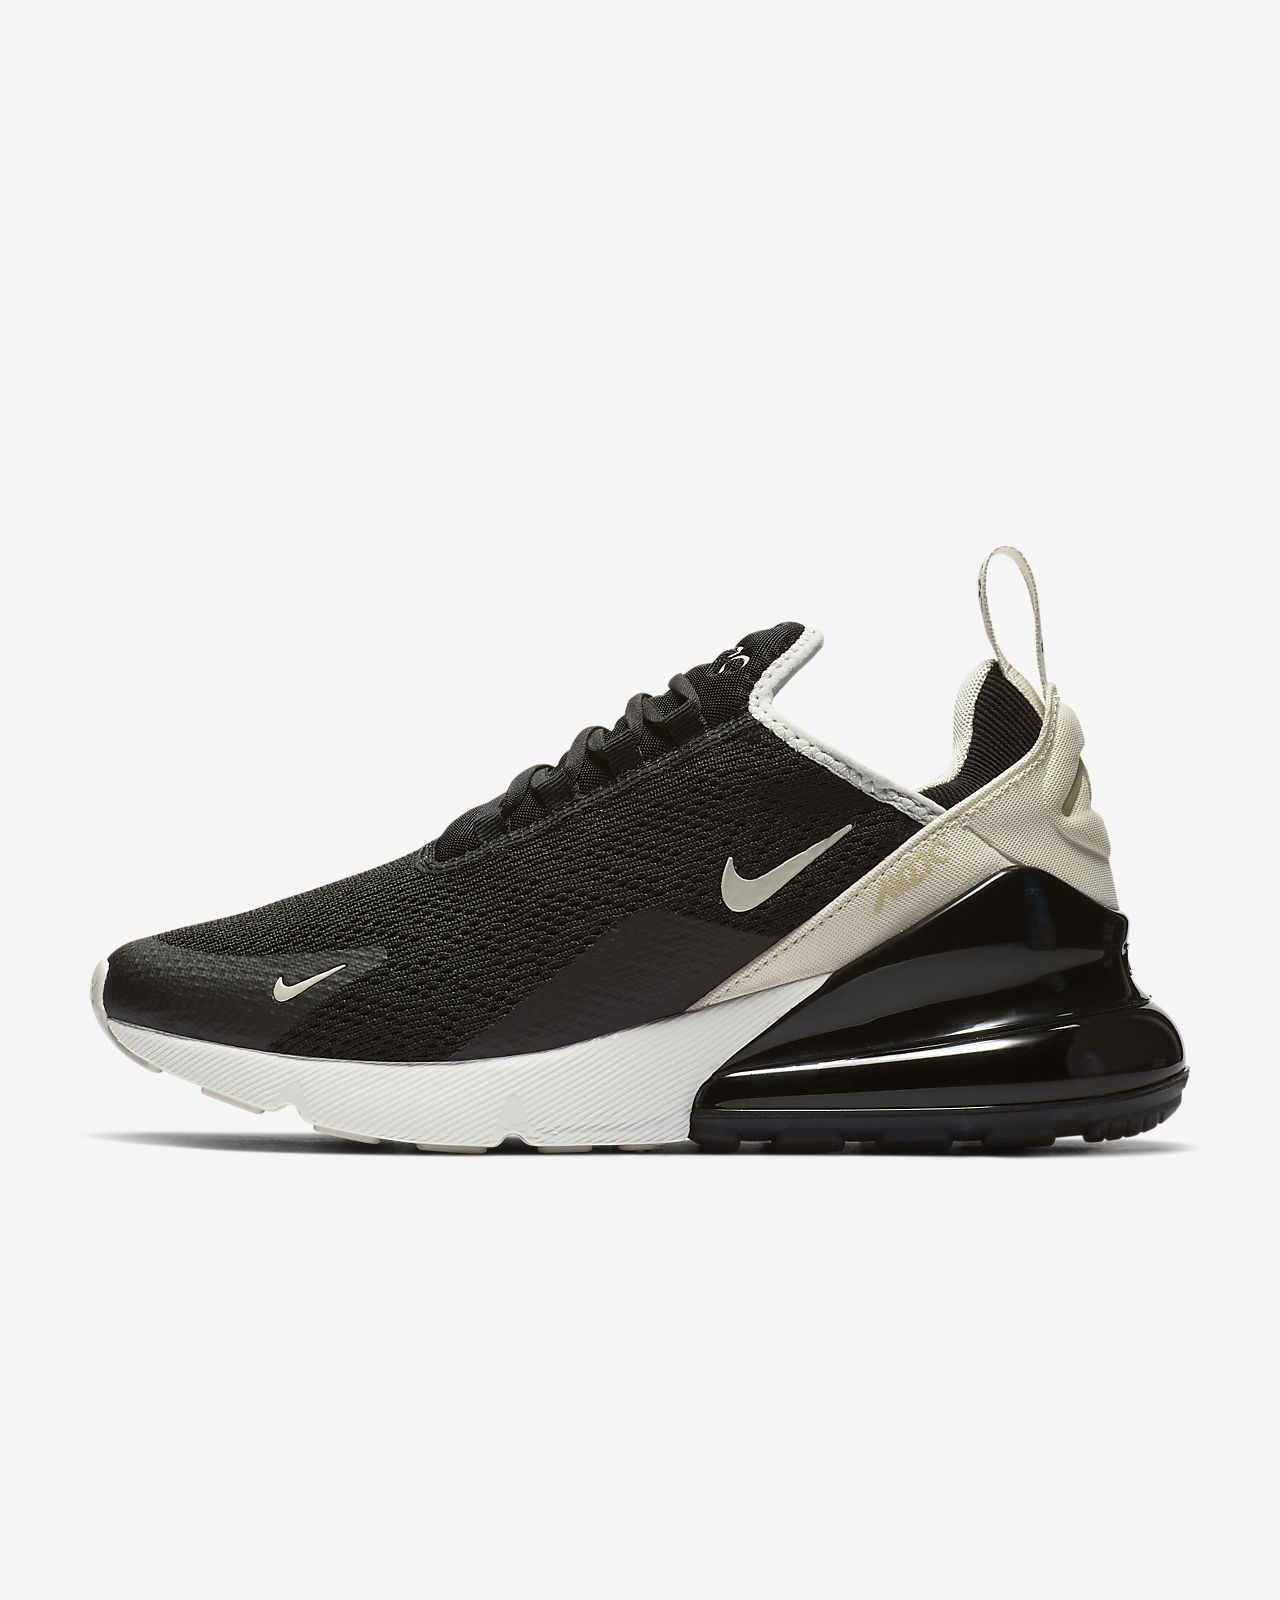 innovative design 57678 9519f ... Chaussure Nike Air Max 270 pour Femme